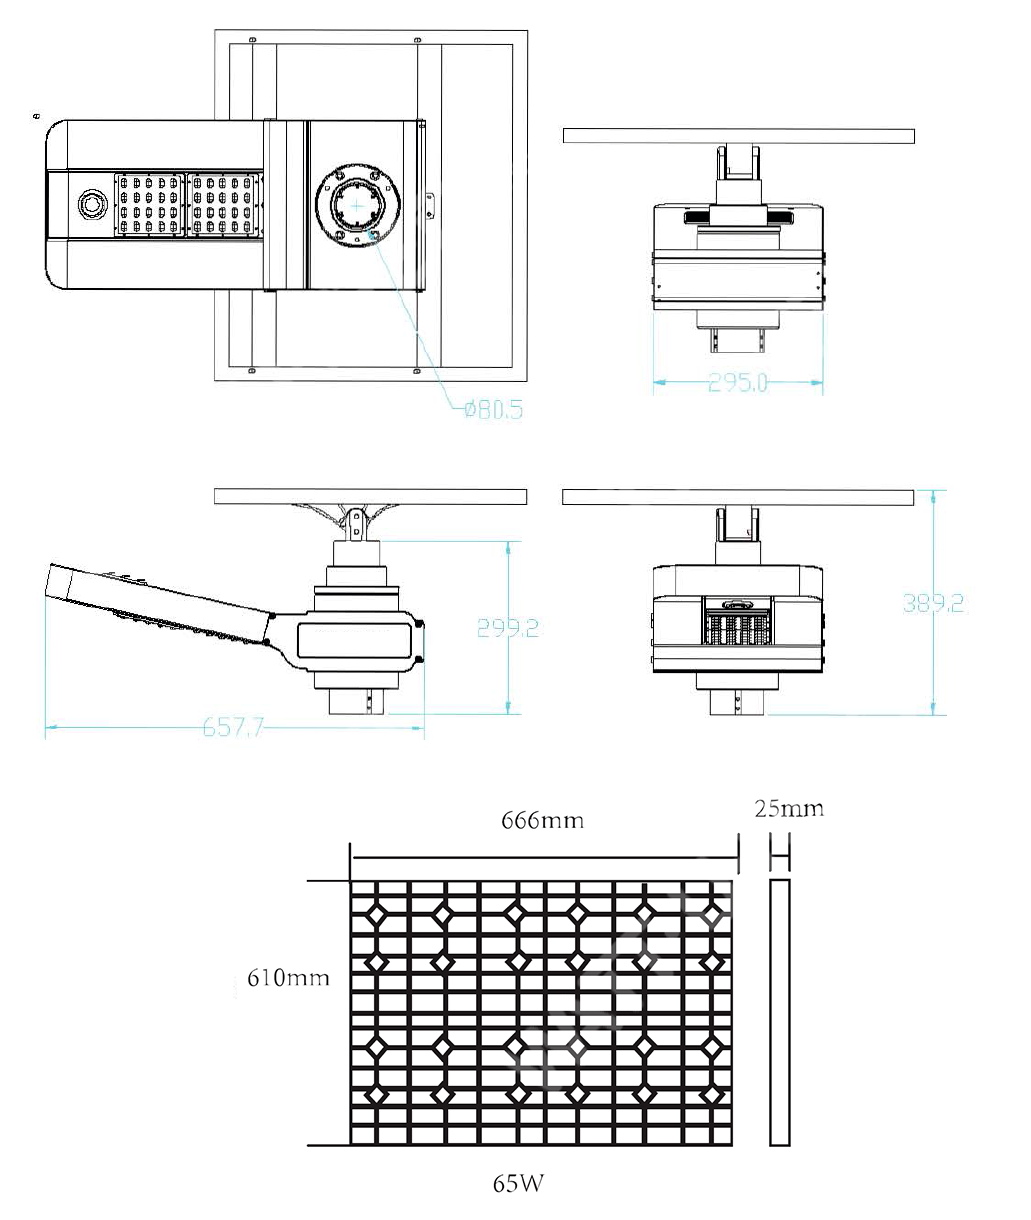 Dimensions of the solar spot and the photovoltaic panel